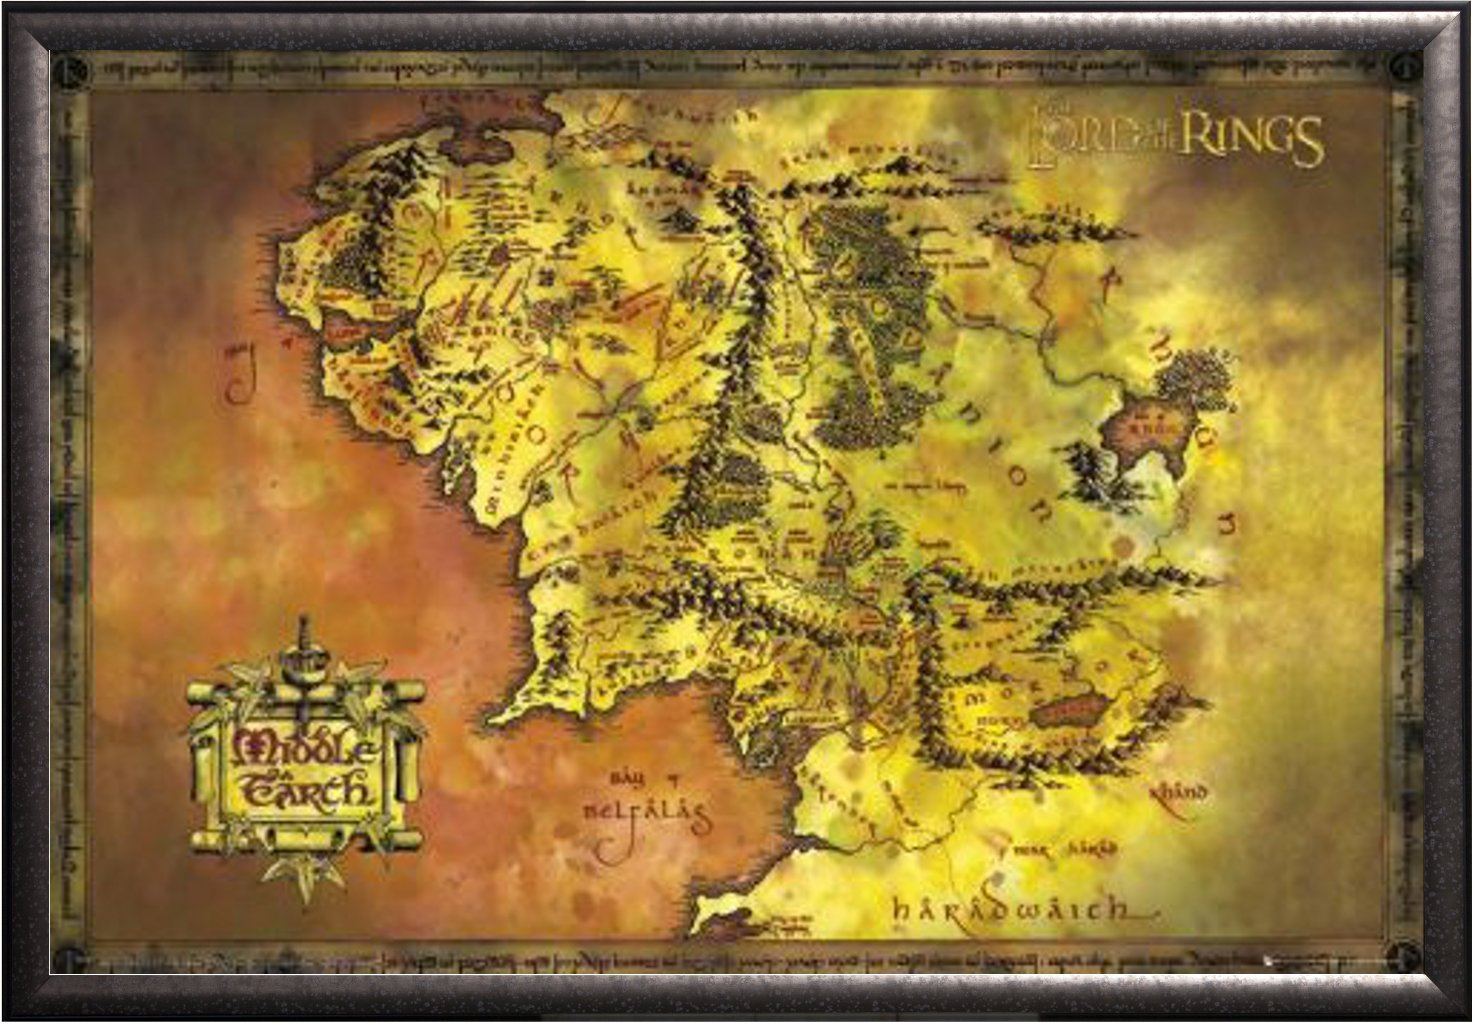 amazoncom lord of the rings map of middle earth 36x24 wood framed poster fine art print lord of the rings gifts posters prints